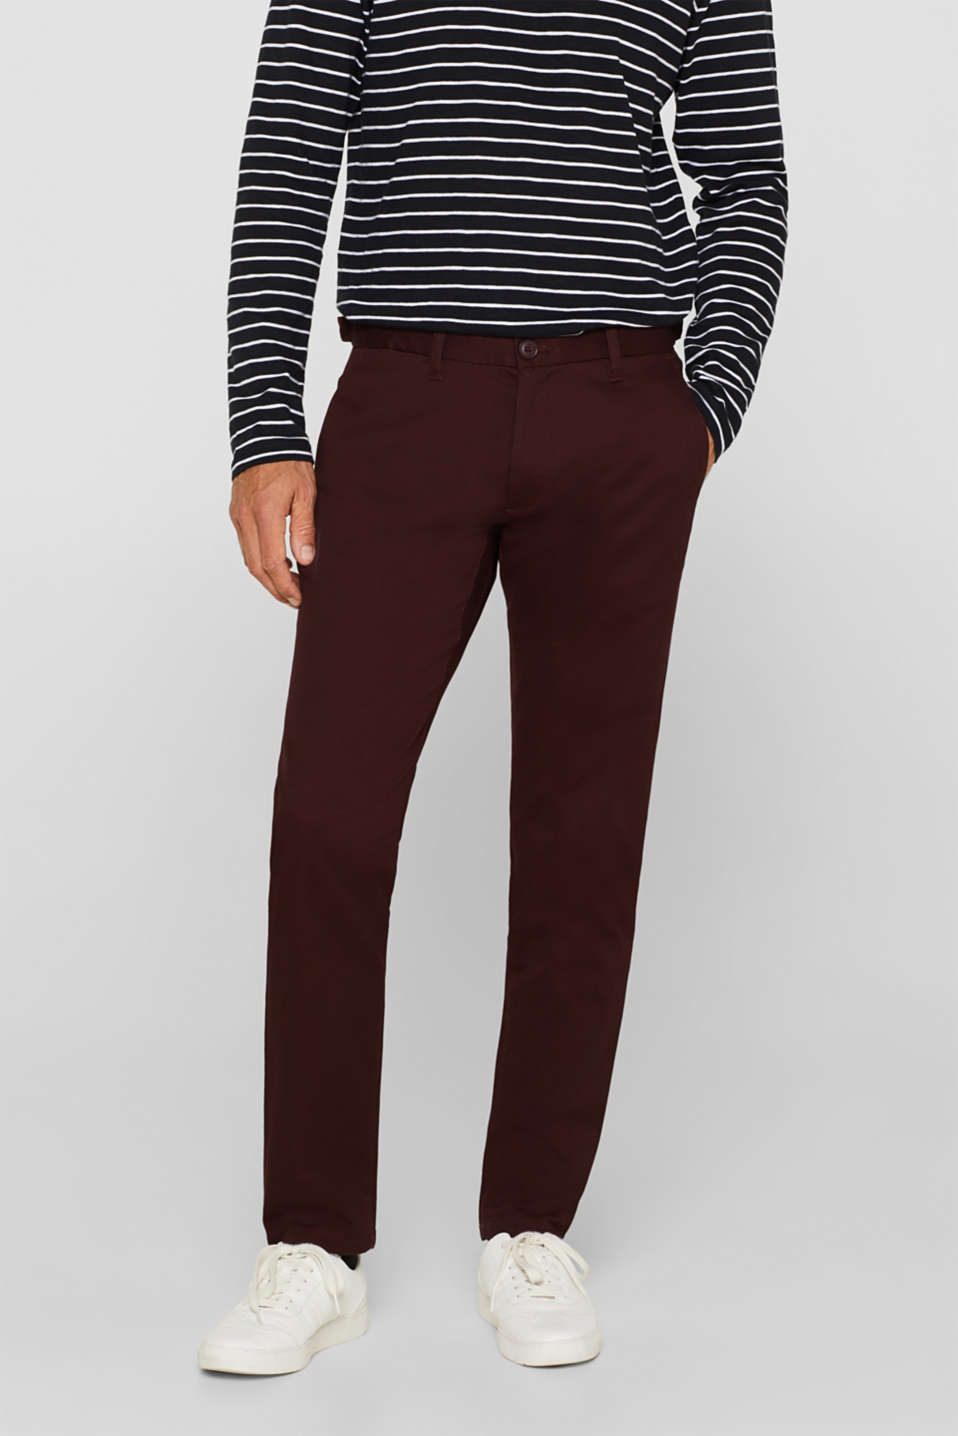 Esprit - Stretch cotton trousers